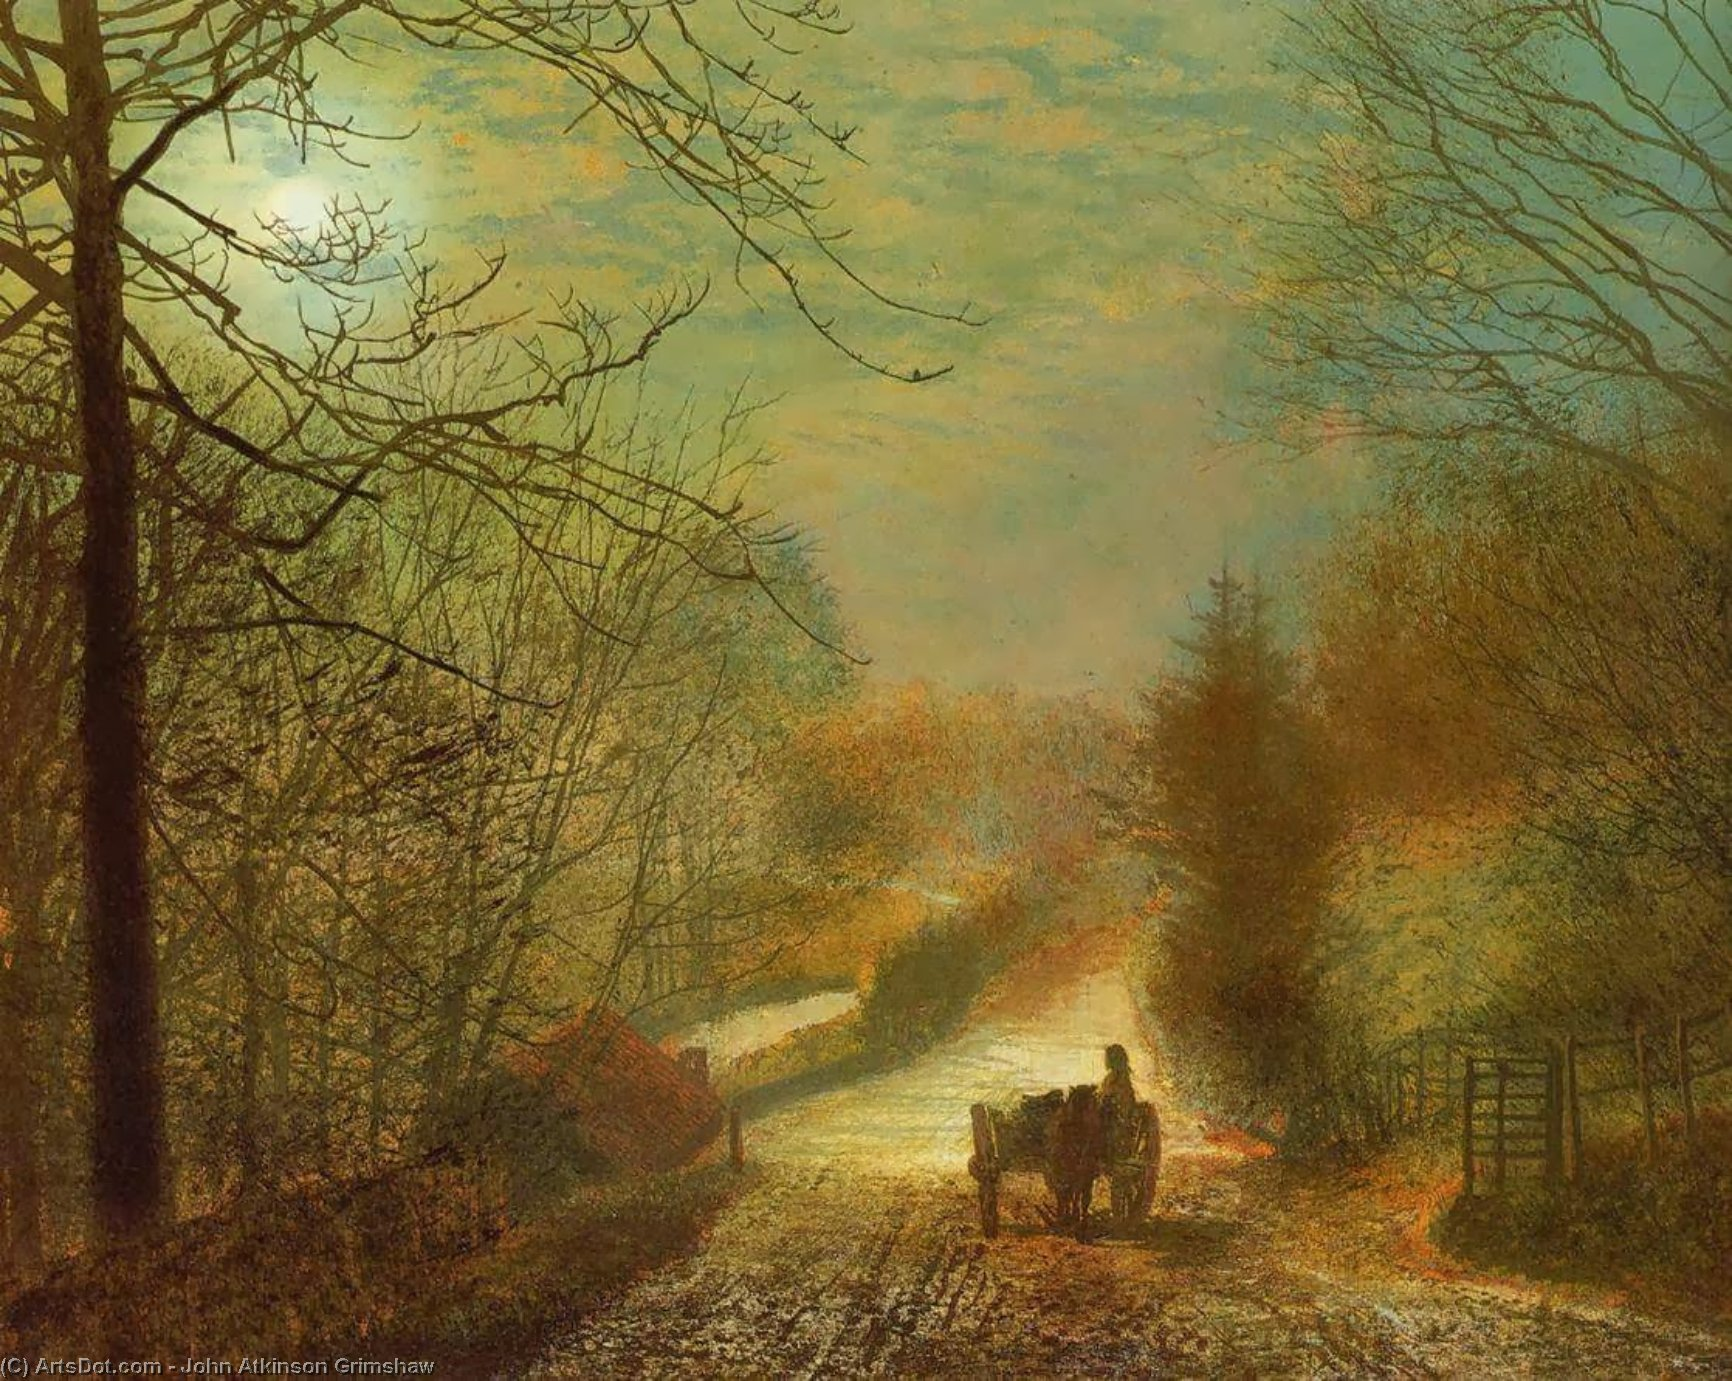 Forge Valley, near Scarborough, 1875 by John Atkinson Grimshaw (1836-1893, United Kingdom)